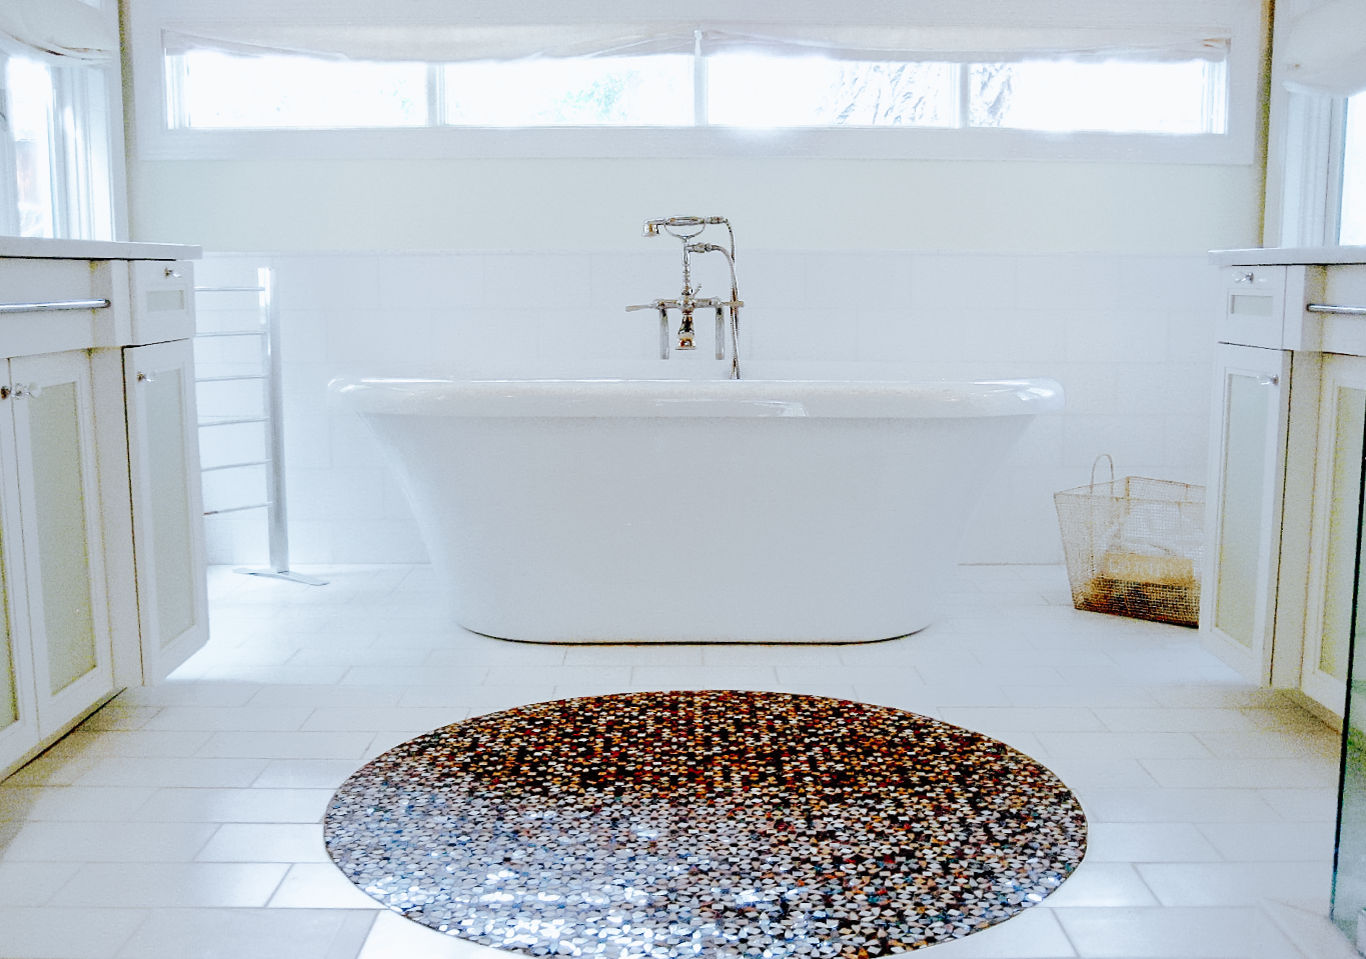 White porcelain bathtub and bathroom with brown circular floor mosaic